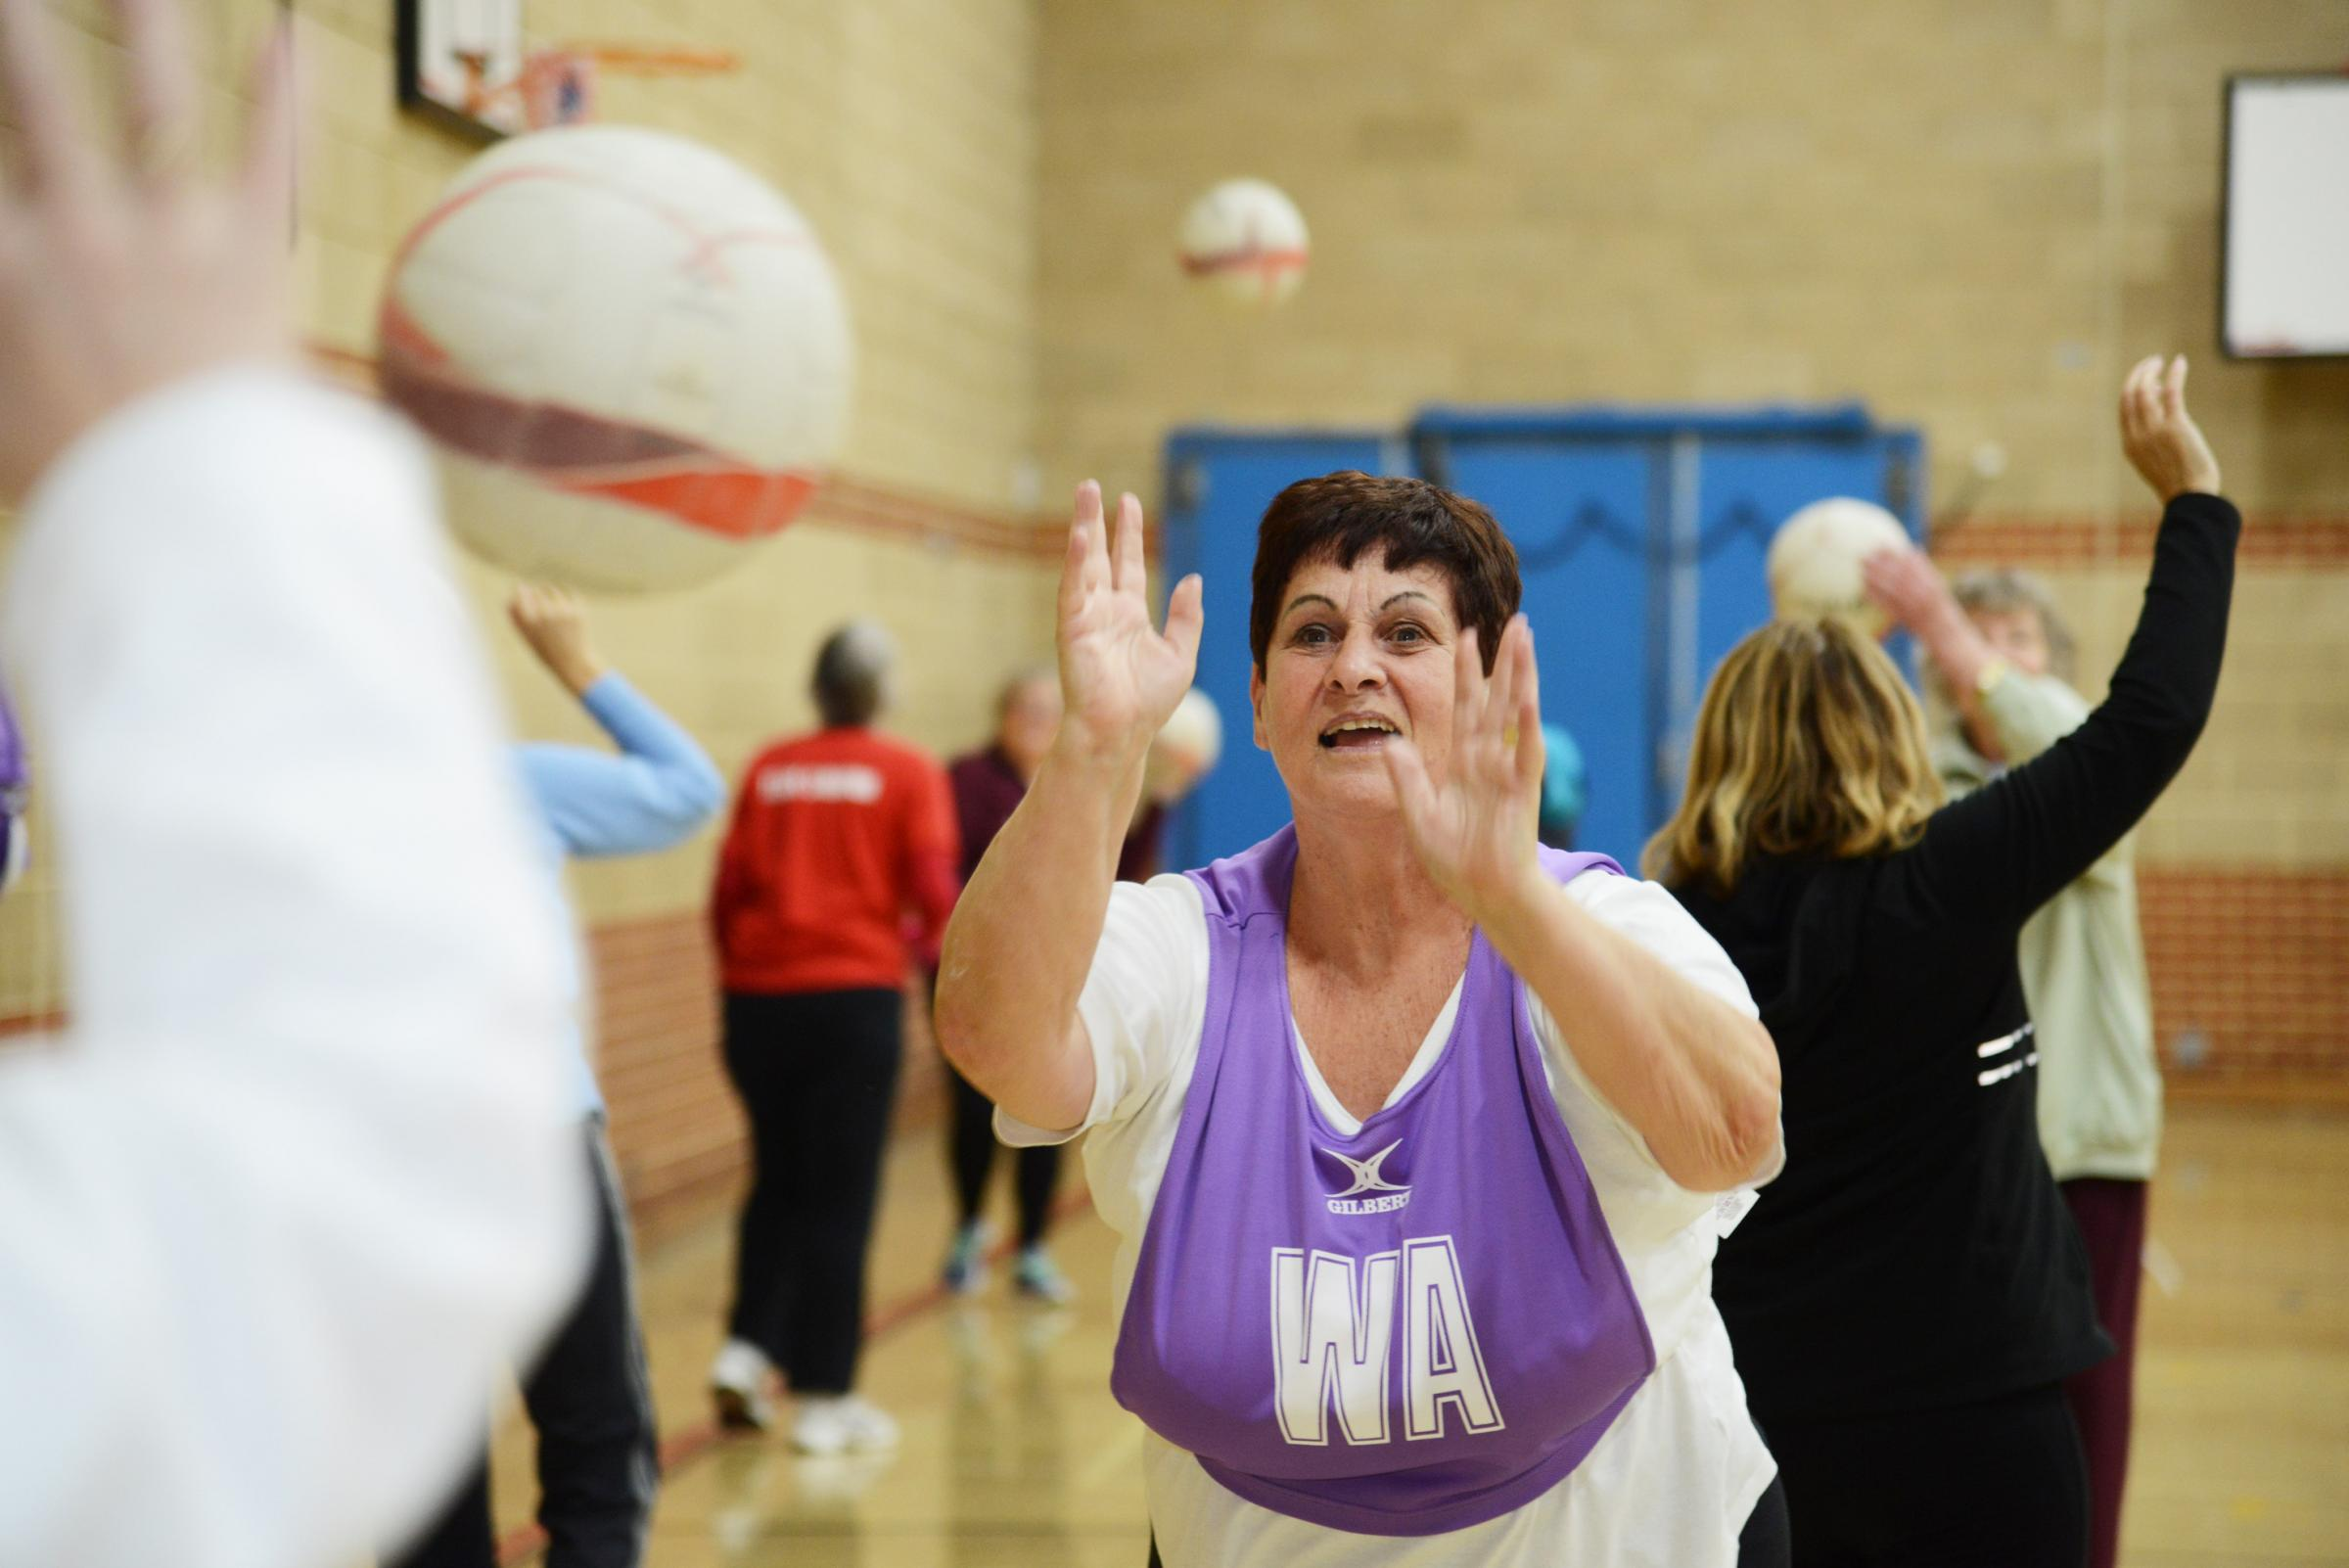 A walking netball session. The group sessions have helped those with dementia. Picture: THOMAS KELSEY